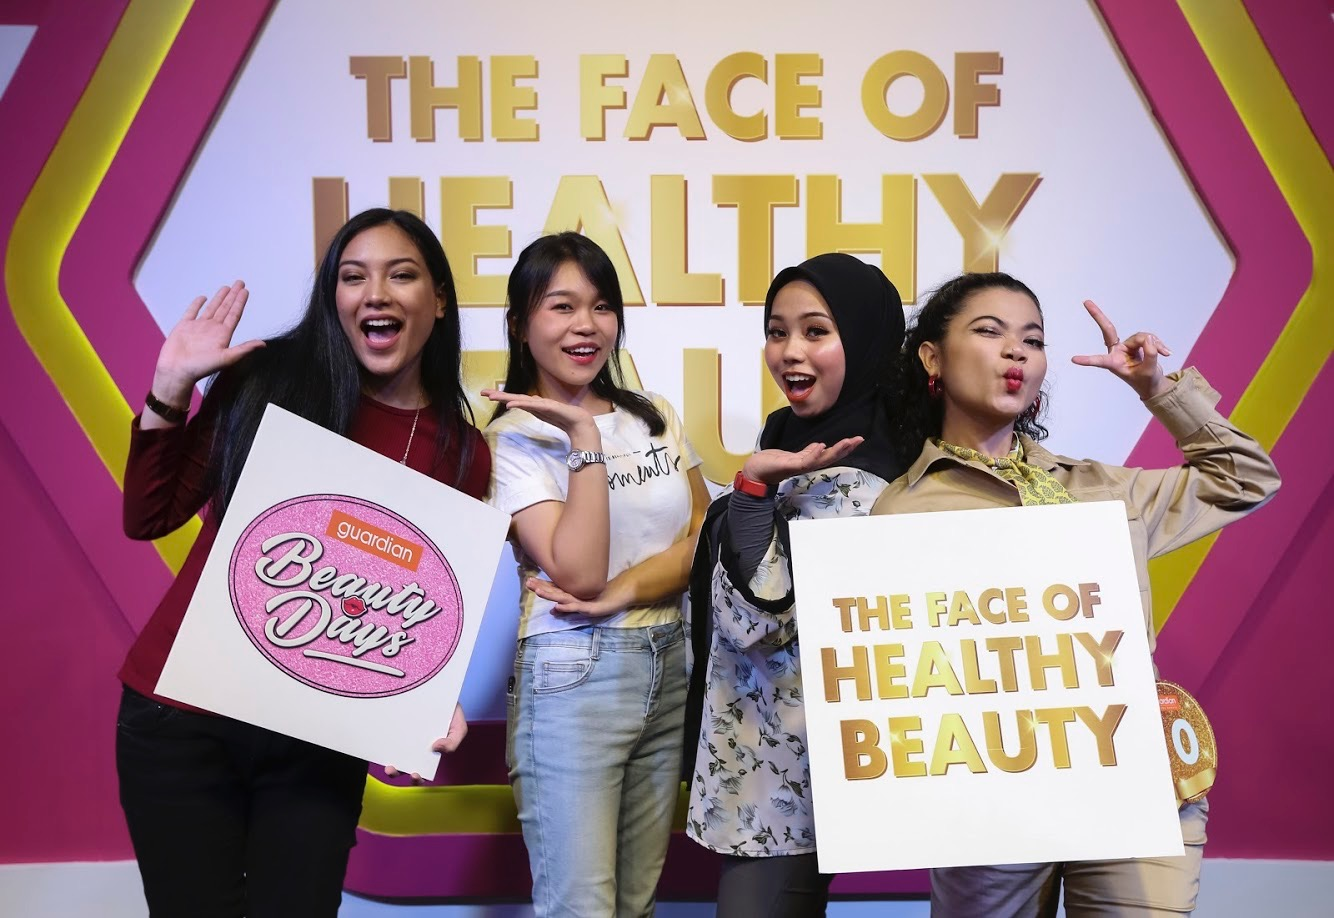 ARE YOU 'THE FACE OF HEALTHY BEAUTY'? First 4 finalists selected in the first Semi-Finals held in Johor Bahru